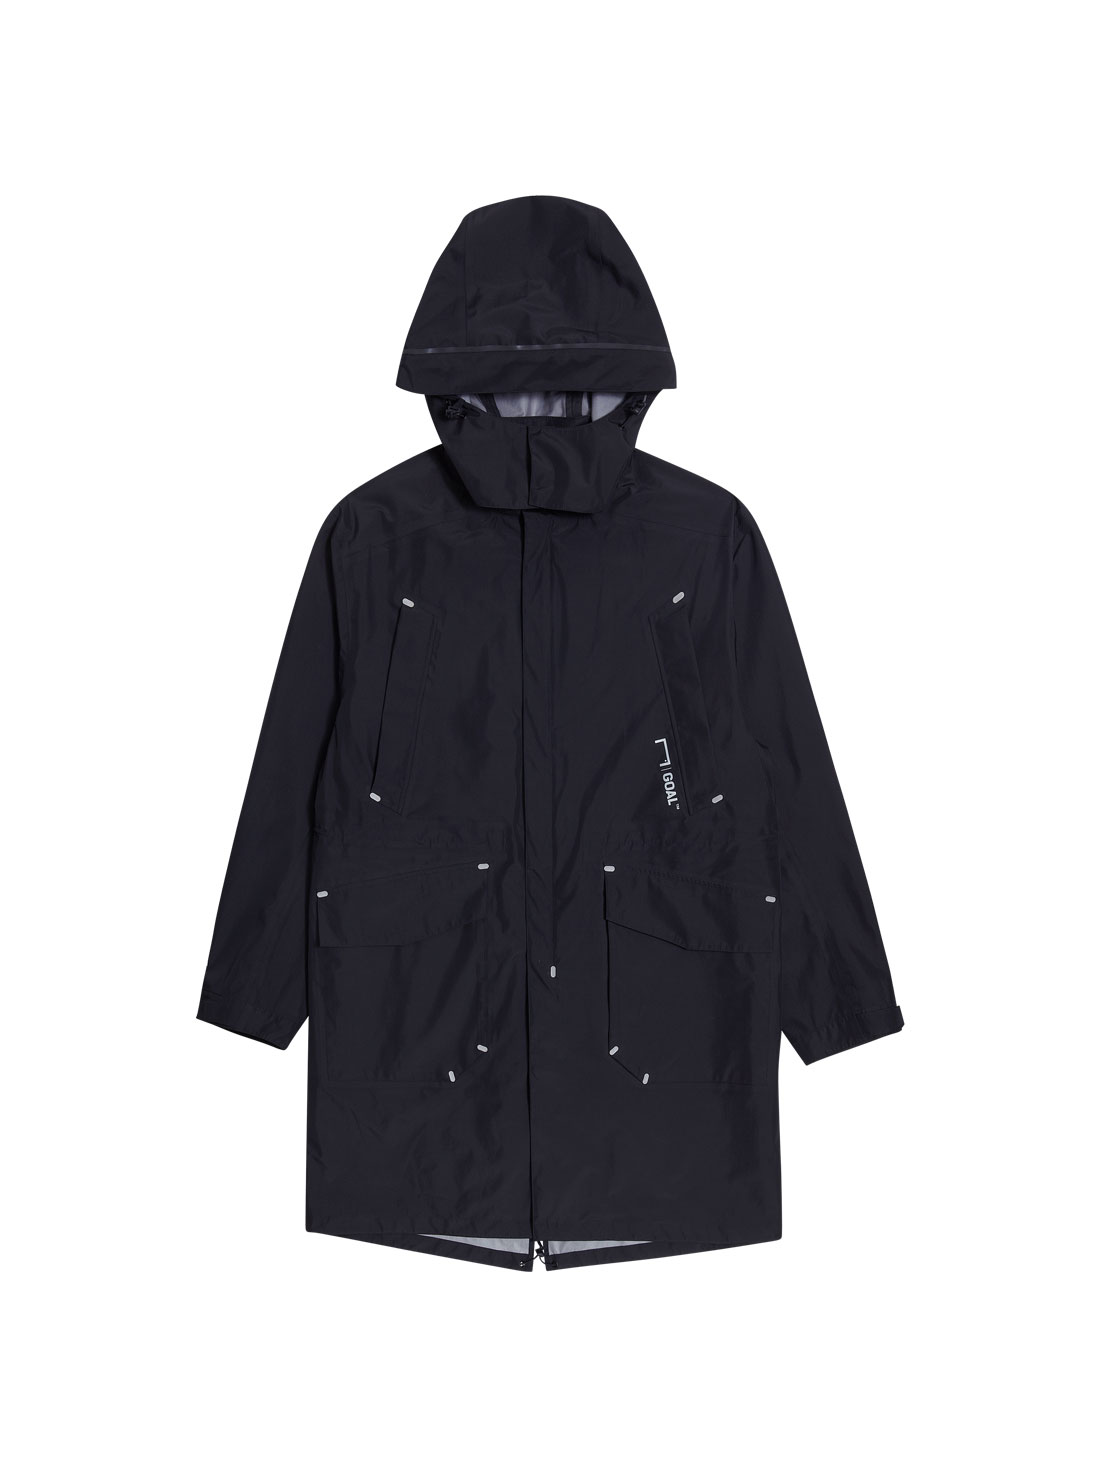 GOALSTUDIO LONG FISHTAIL WIND JACKET